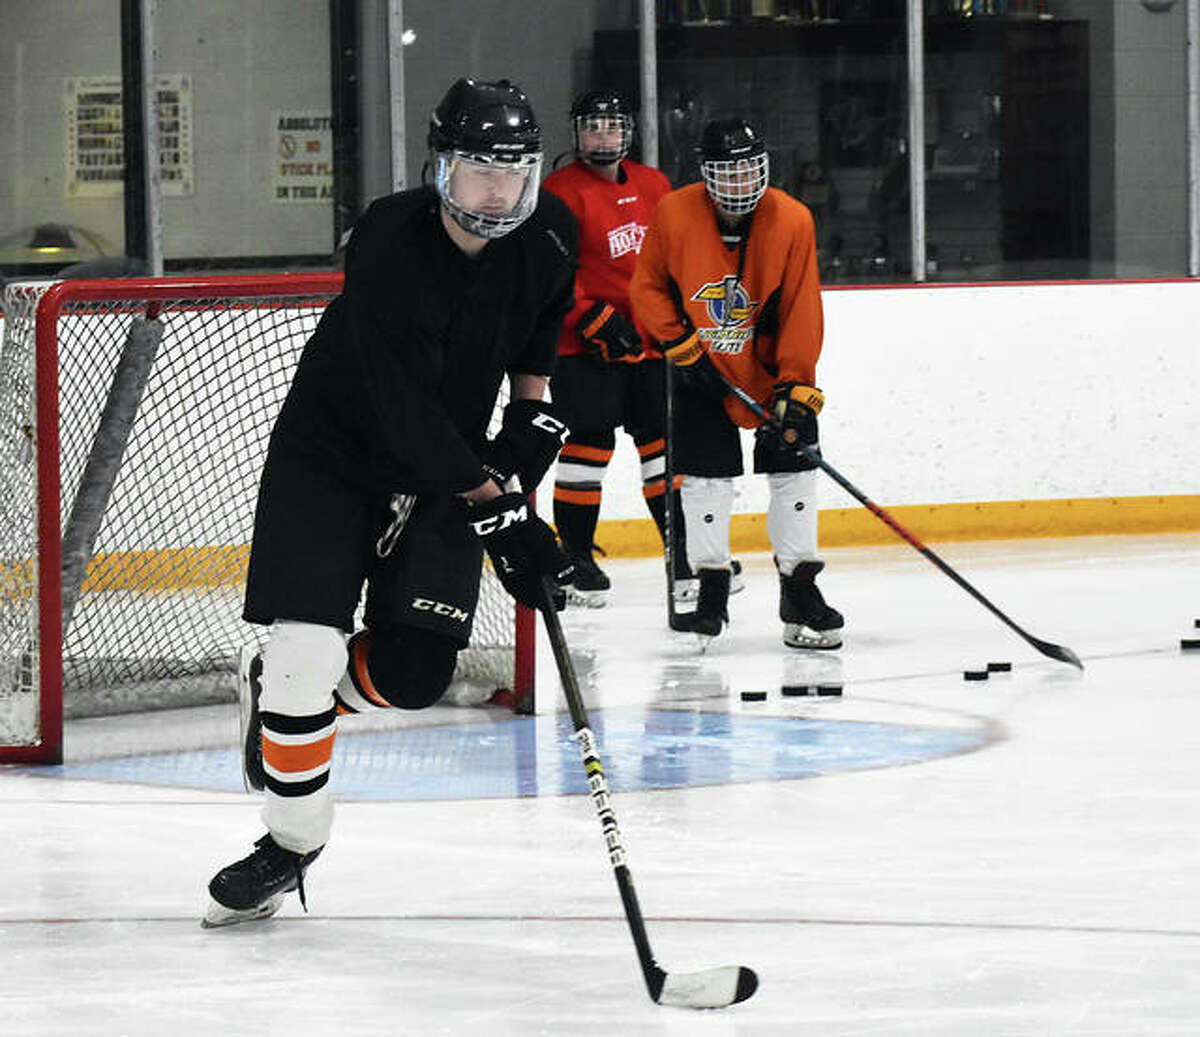 Members of the Edwardsville ice hockey program complete a drill during Wednesday's conditioning session inside the East Alton Ice Arena.